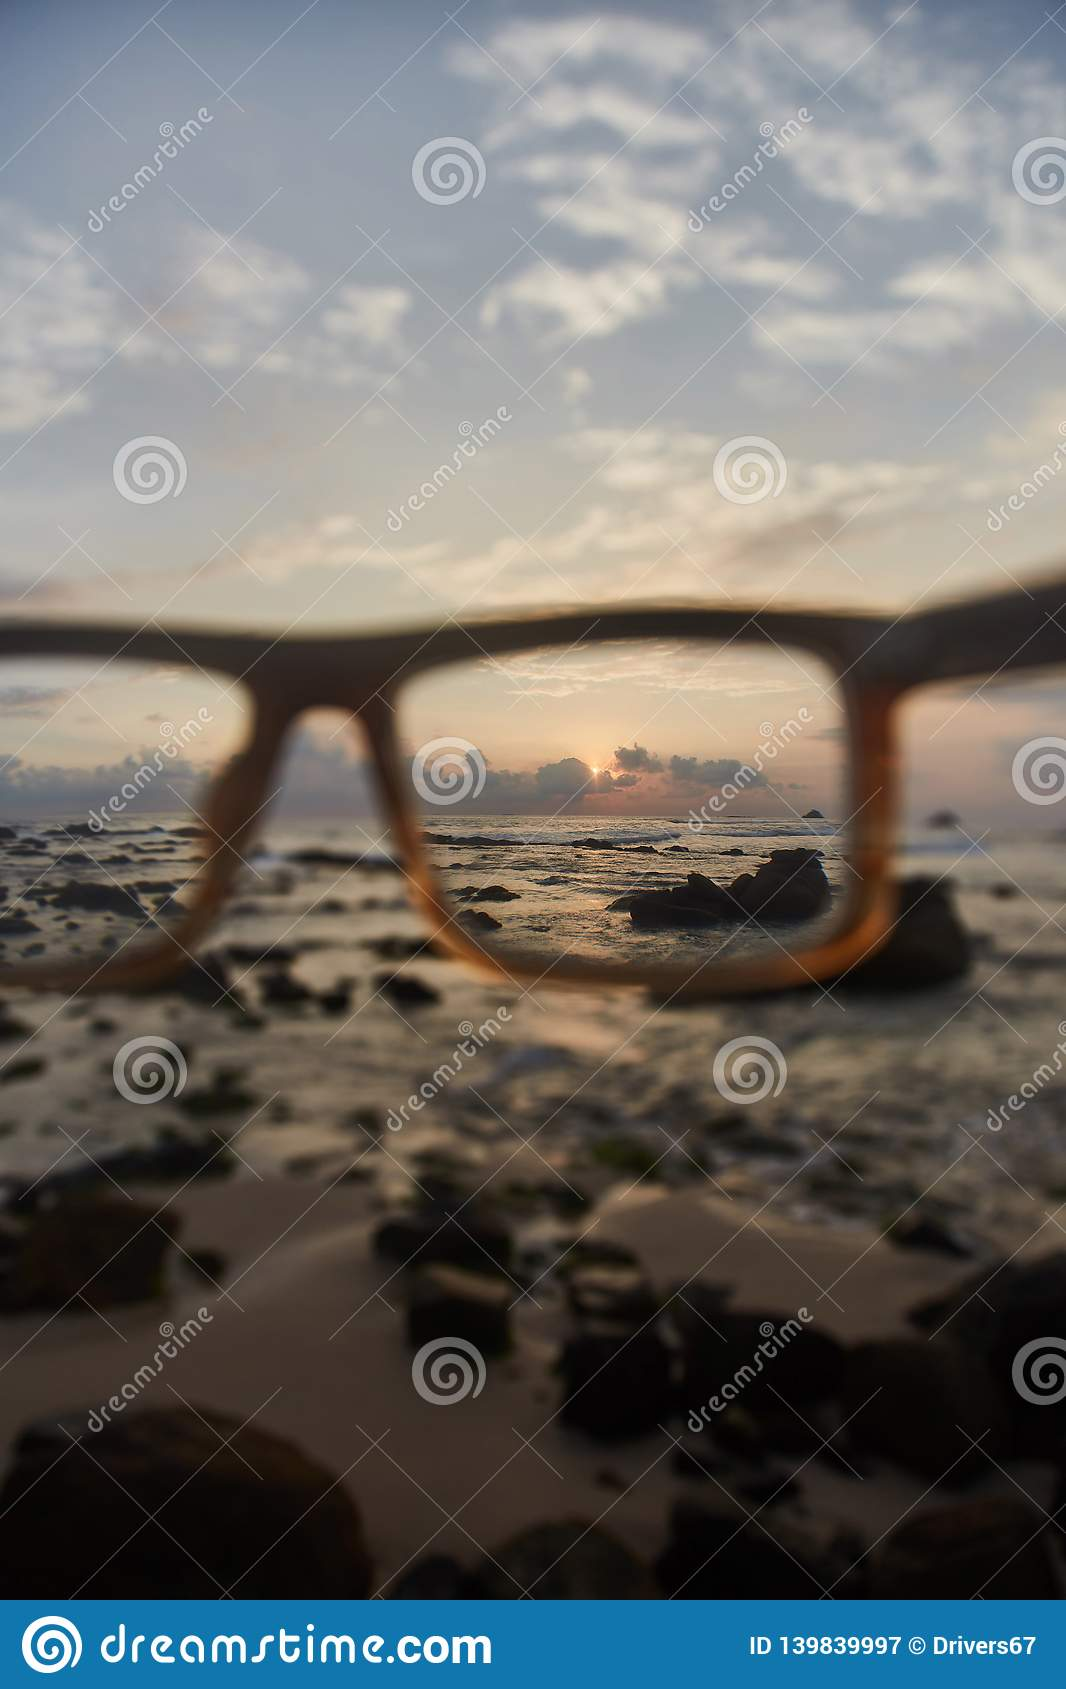 Sunset through the glasses